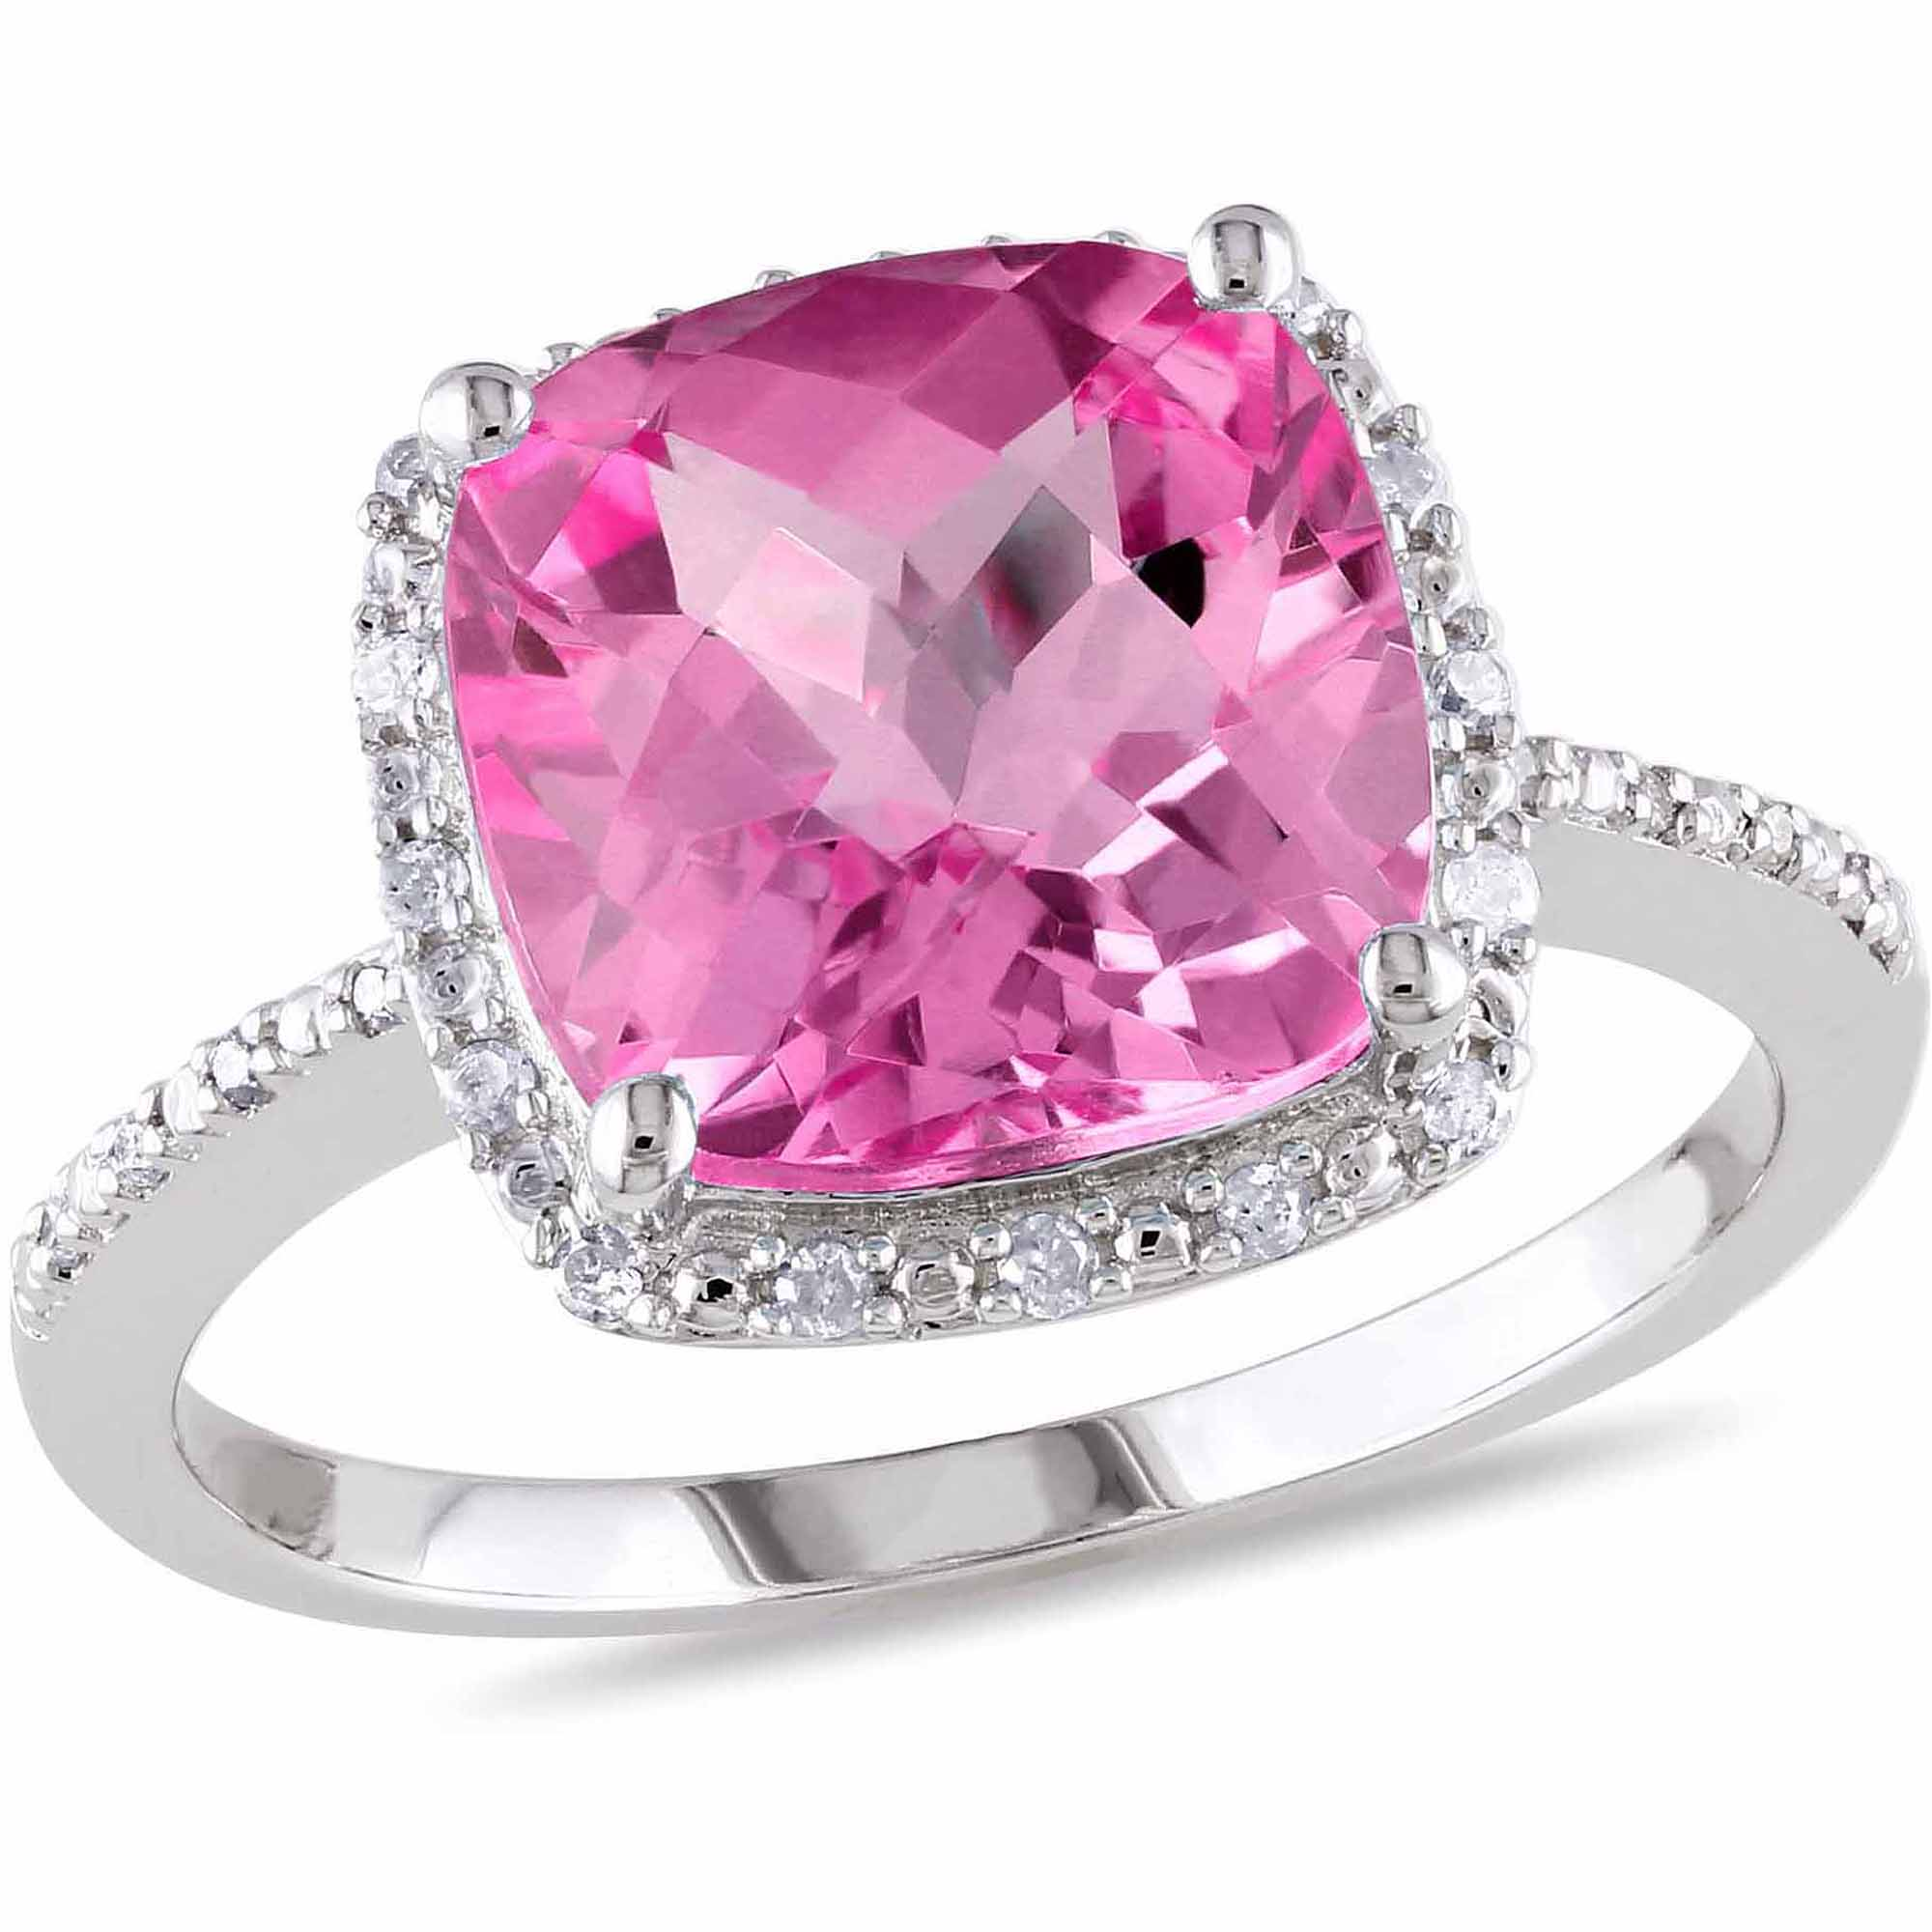 5-3 4 Carat T.G.W. Cushion-Cut Created Pink Sapphire and Diamond-Accent Halo Cocktail Ring by Delmar Manufacturing LLC